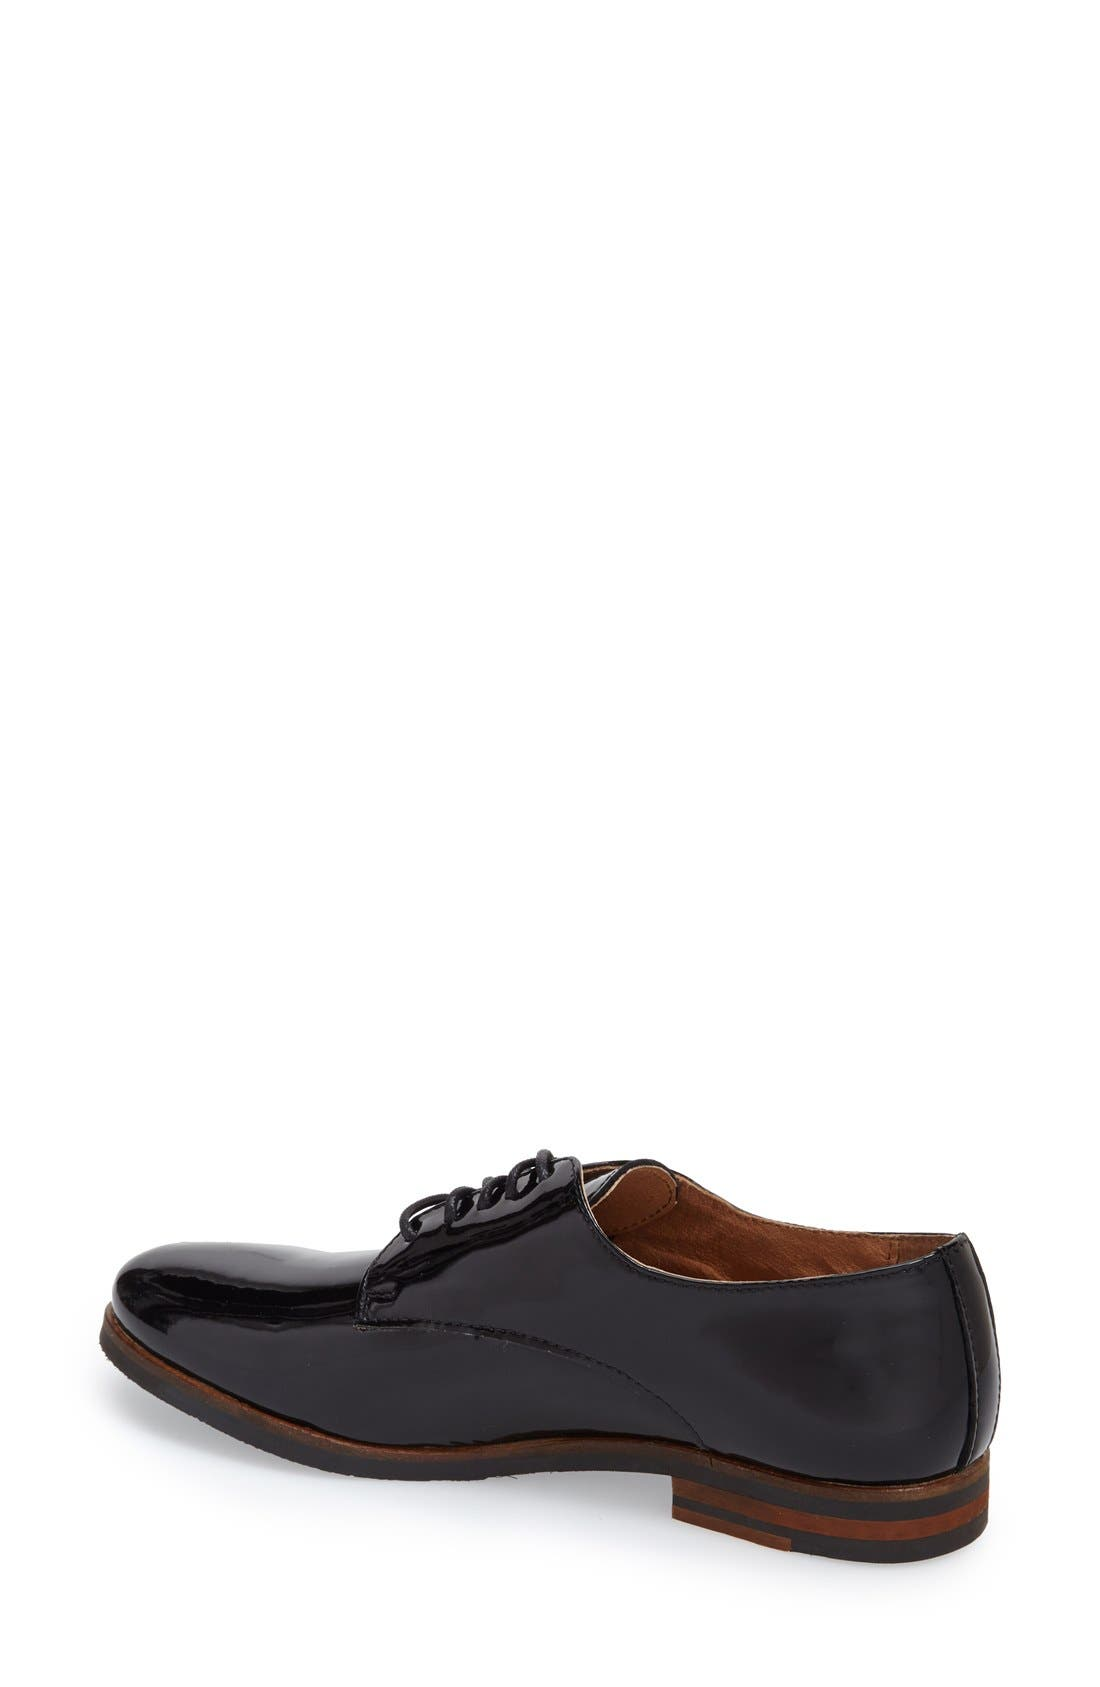 Alternate Image 2  - Dune London 'Laboux' Patent Leather Oxford (Women)